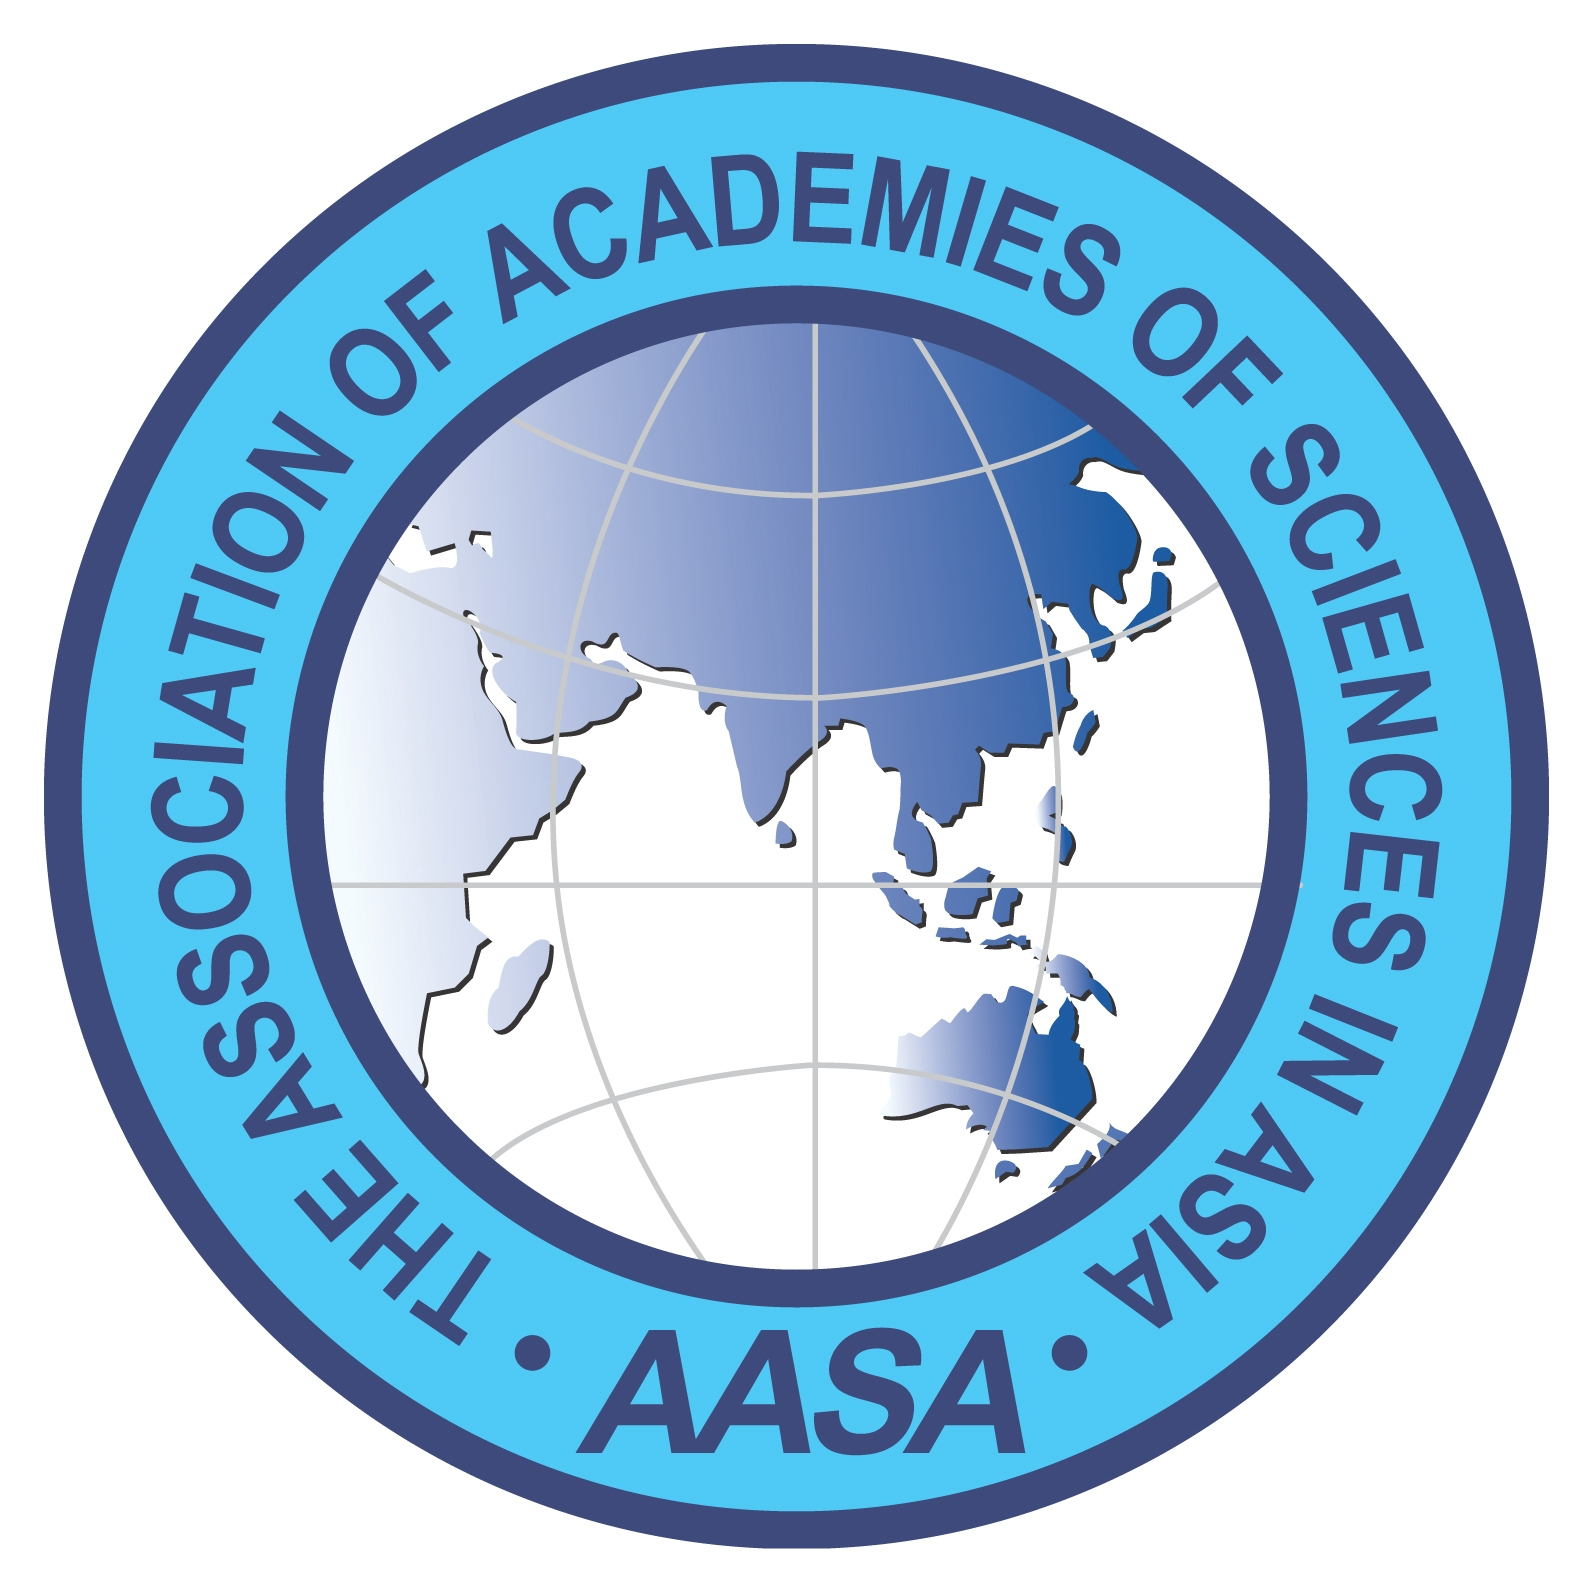 logo for Association of Academies of Science for Asia